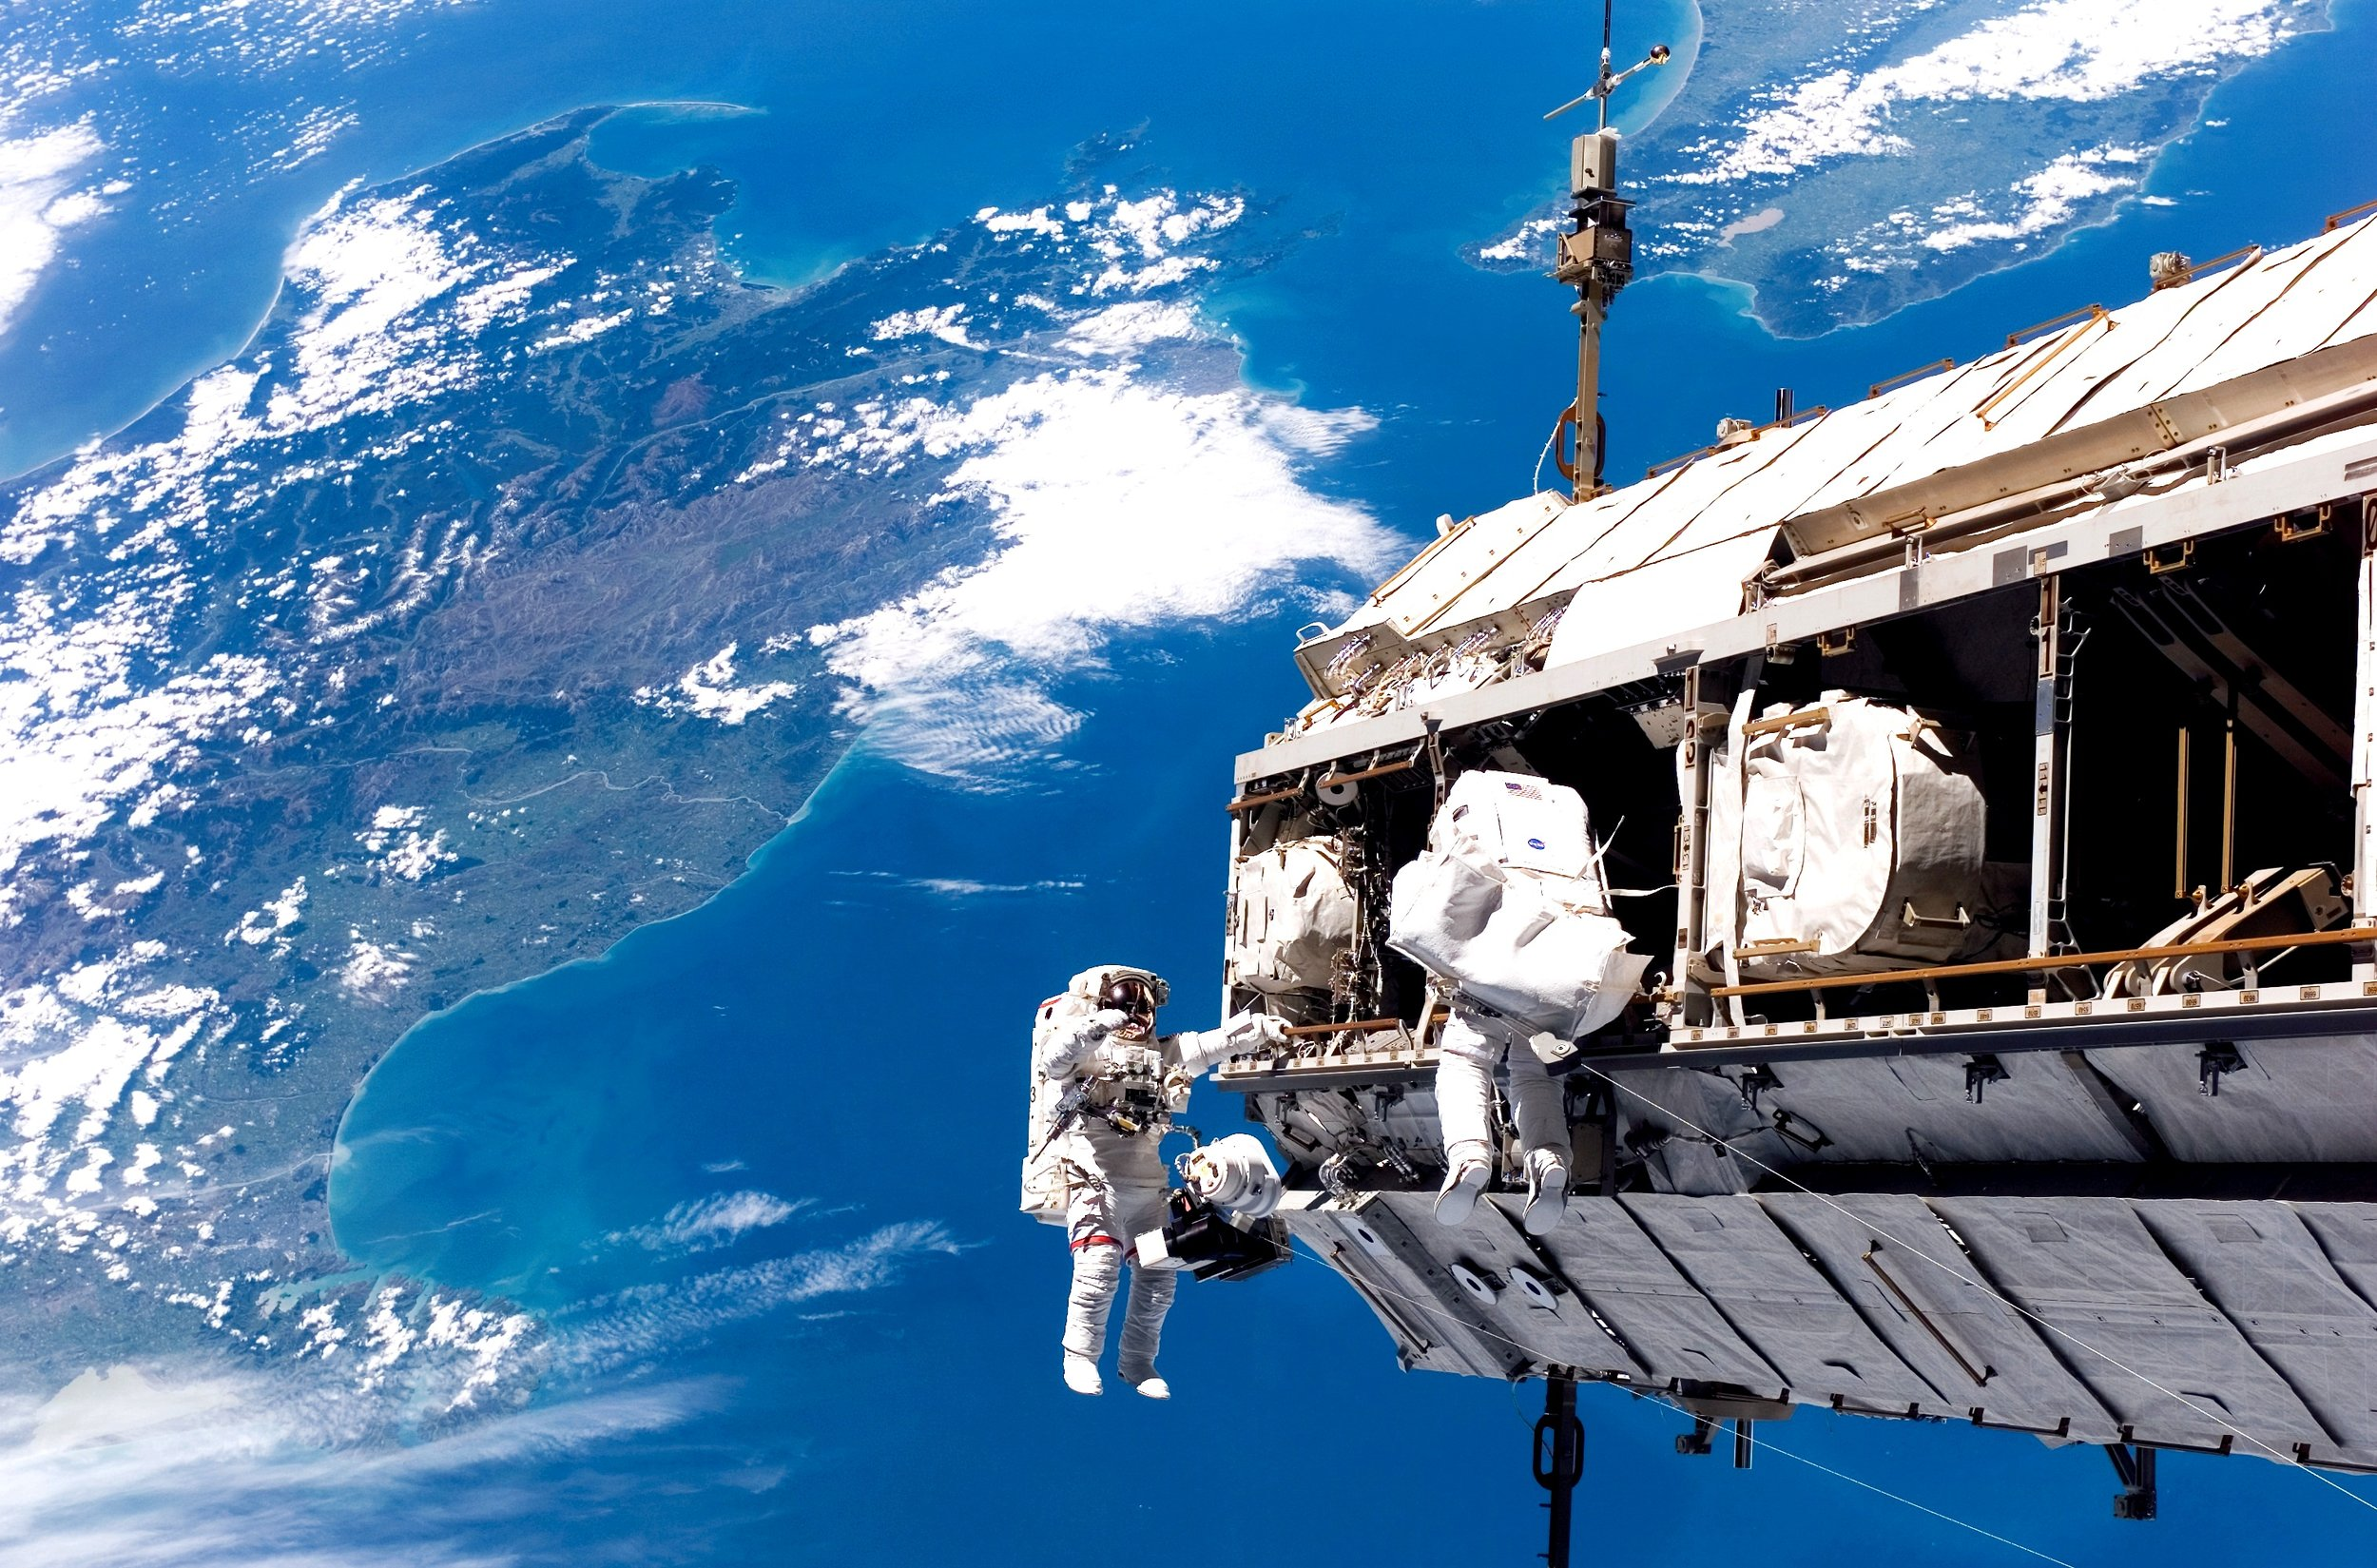 U.S. astronaut Robert Curbeam (left) and Swedish Astronaut Christer Fuglesang rewire the Station's electrical system in December 2006. The land mass below is New Zealand. Photo credit: NASA.